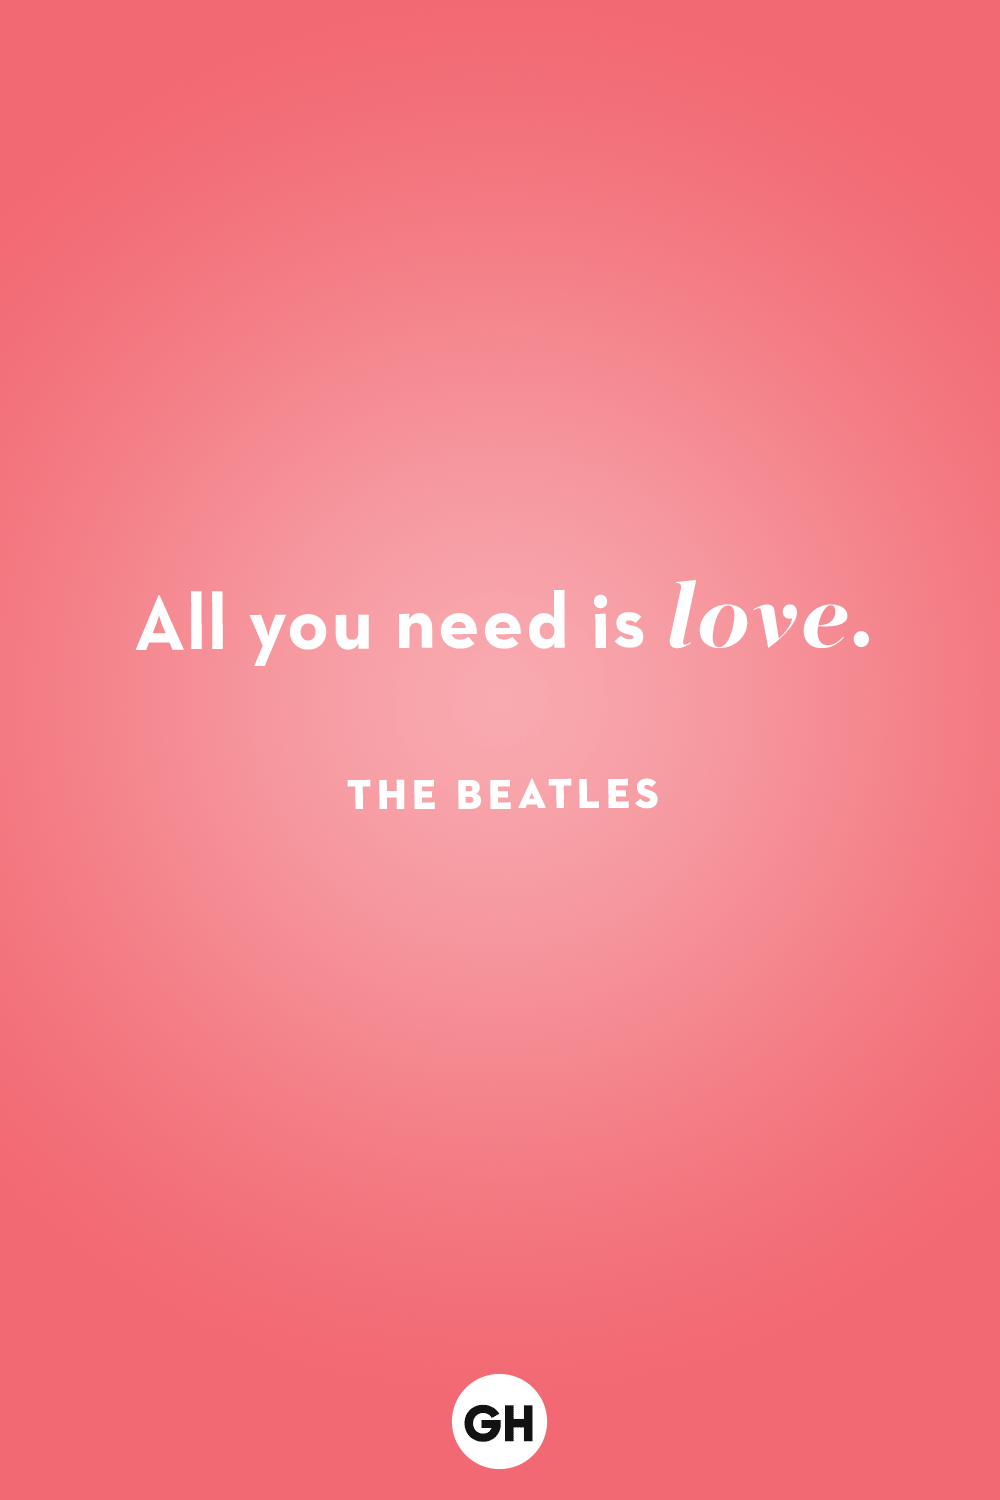 gh love quotes the beatles